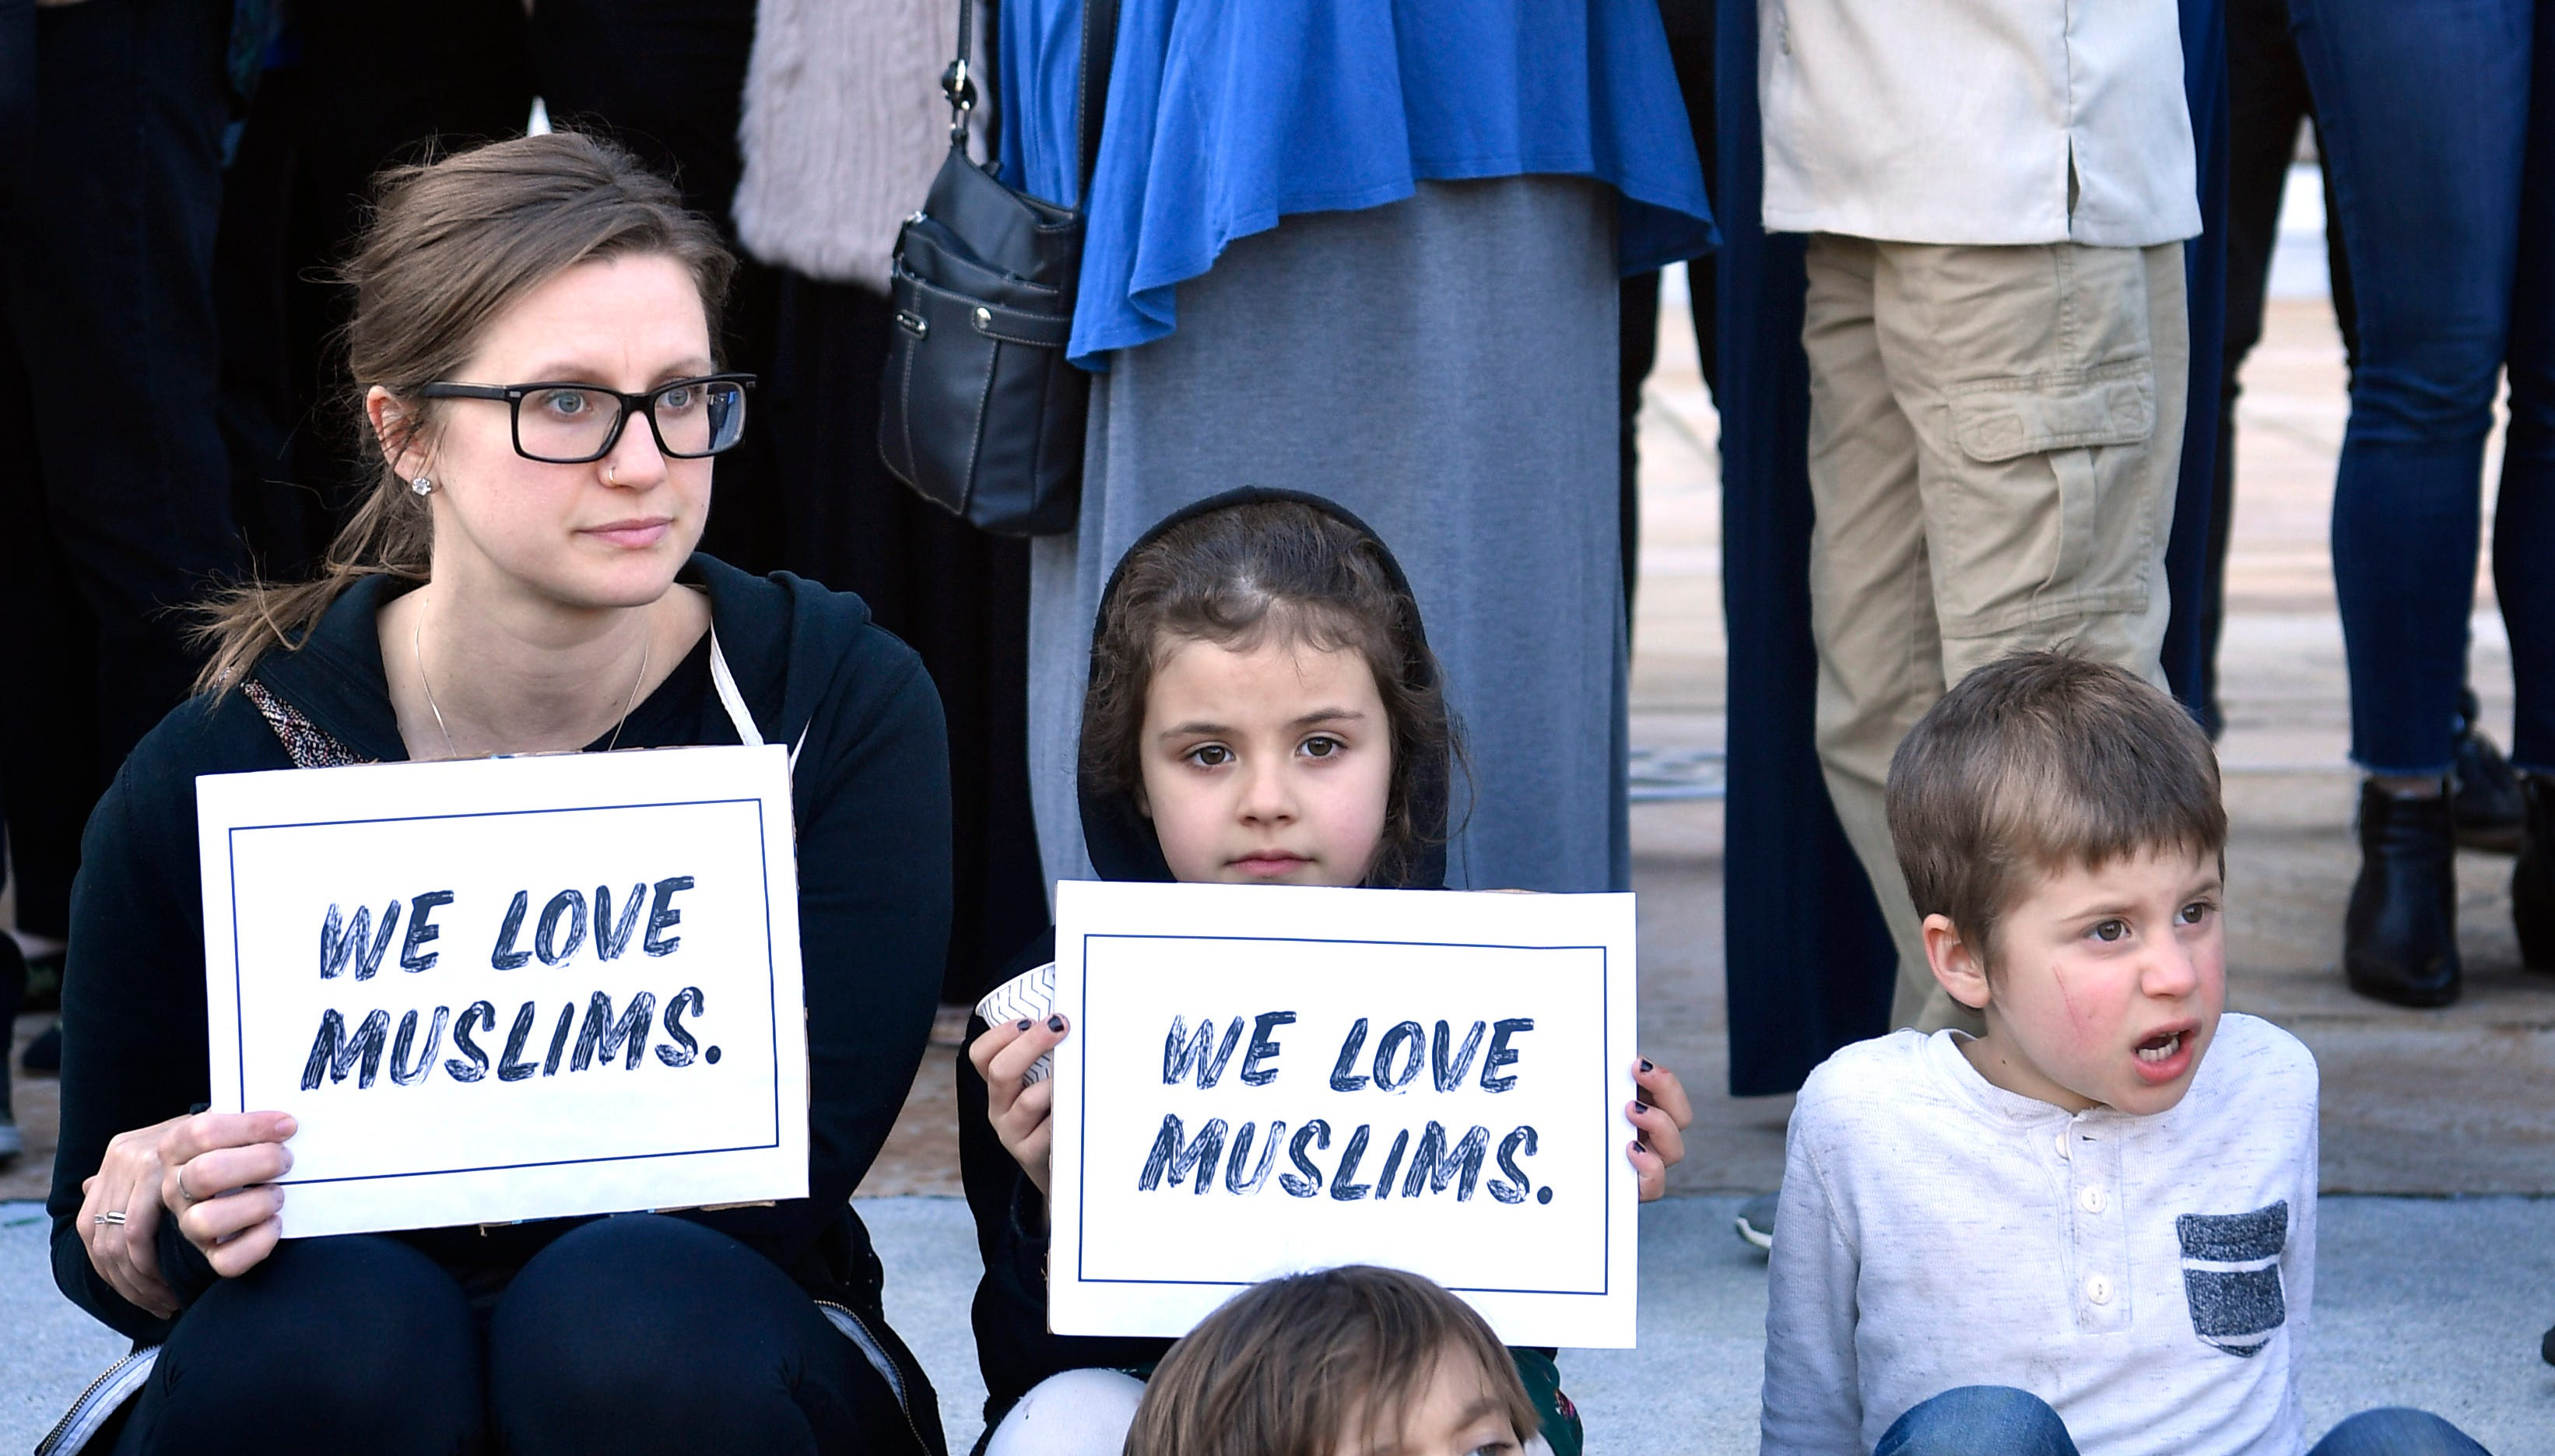 """Becky Laparra wanted to teach her children Solacem Roman and Belle to """"love their neighbors"""" so they came bearing signs to the vigil Sunday to remember 50 people who were killed and more than 34 were wounded in the shootings at two mosques in Christchurch New Zealand Sunday, March 17, 2019, in Nashville, Tenn."""